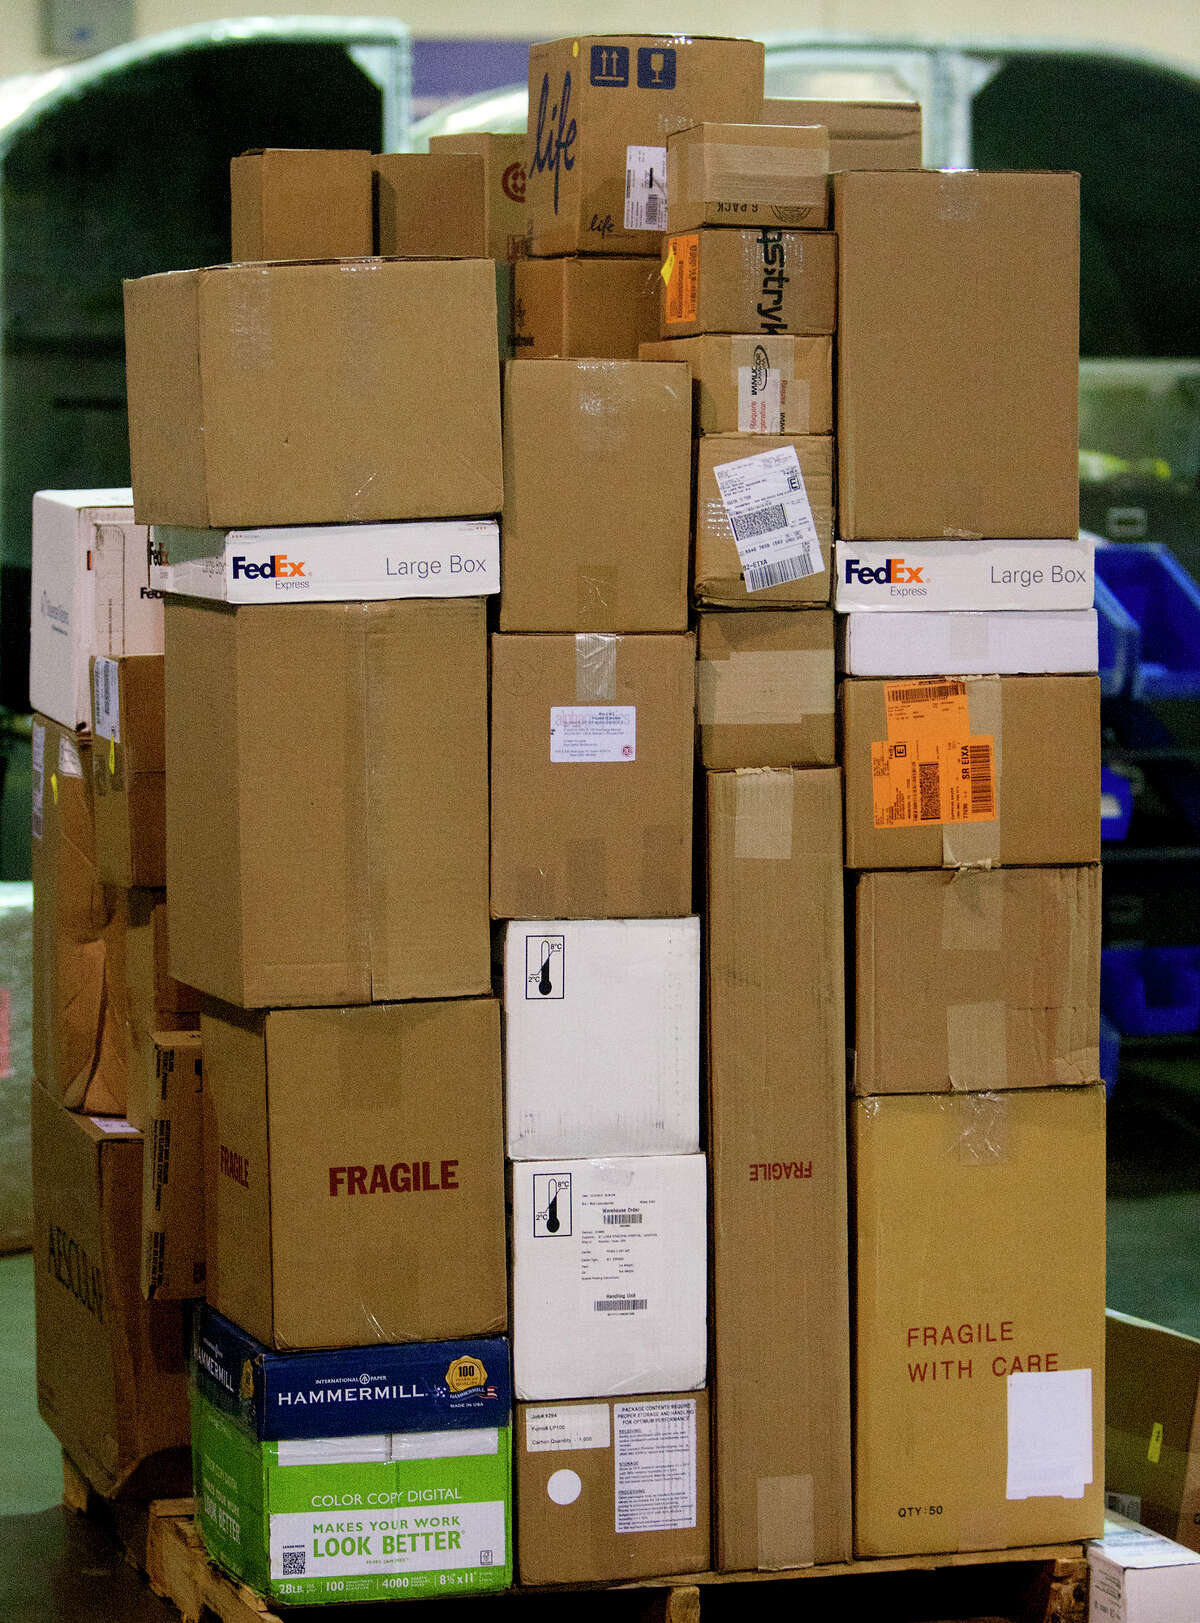 Packages wait to be delivered at FedEx's warehouse in Houston last year. A survey commissioned by Bankrate and compiled by Princeton Survey Research Associates International found that 25 percent of consumers plan to shop online Monday.